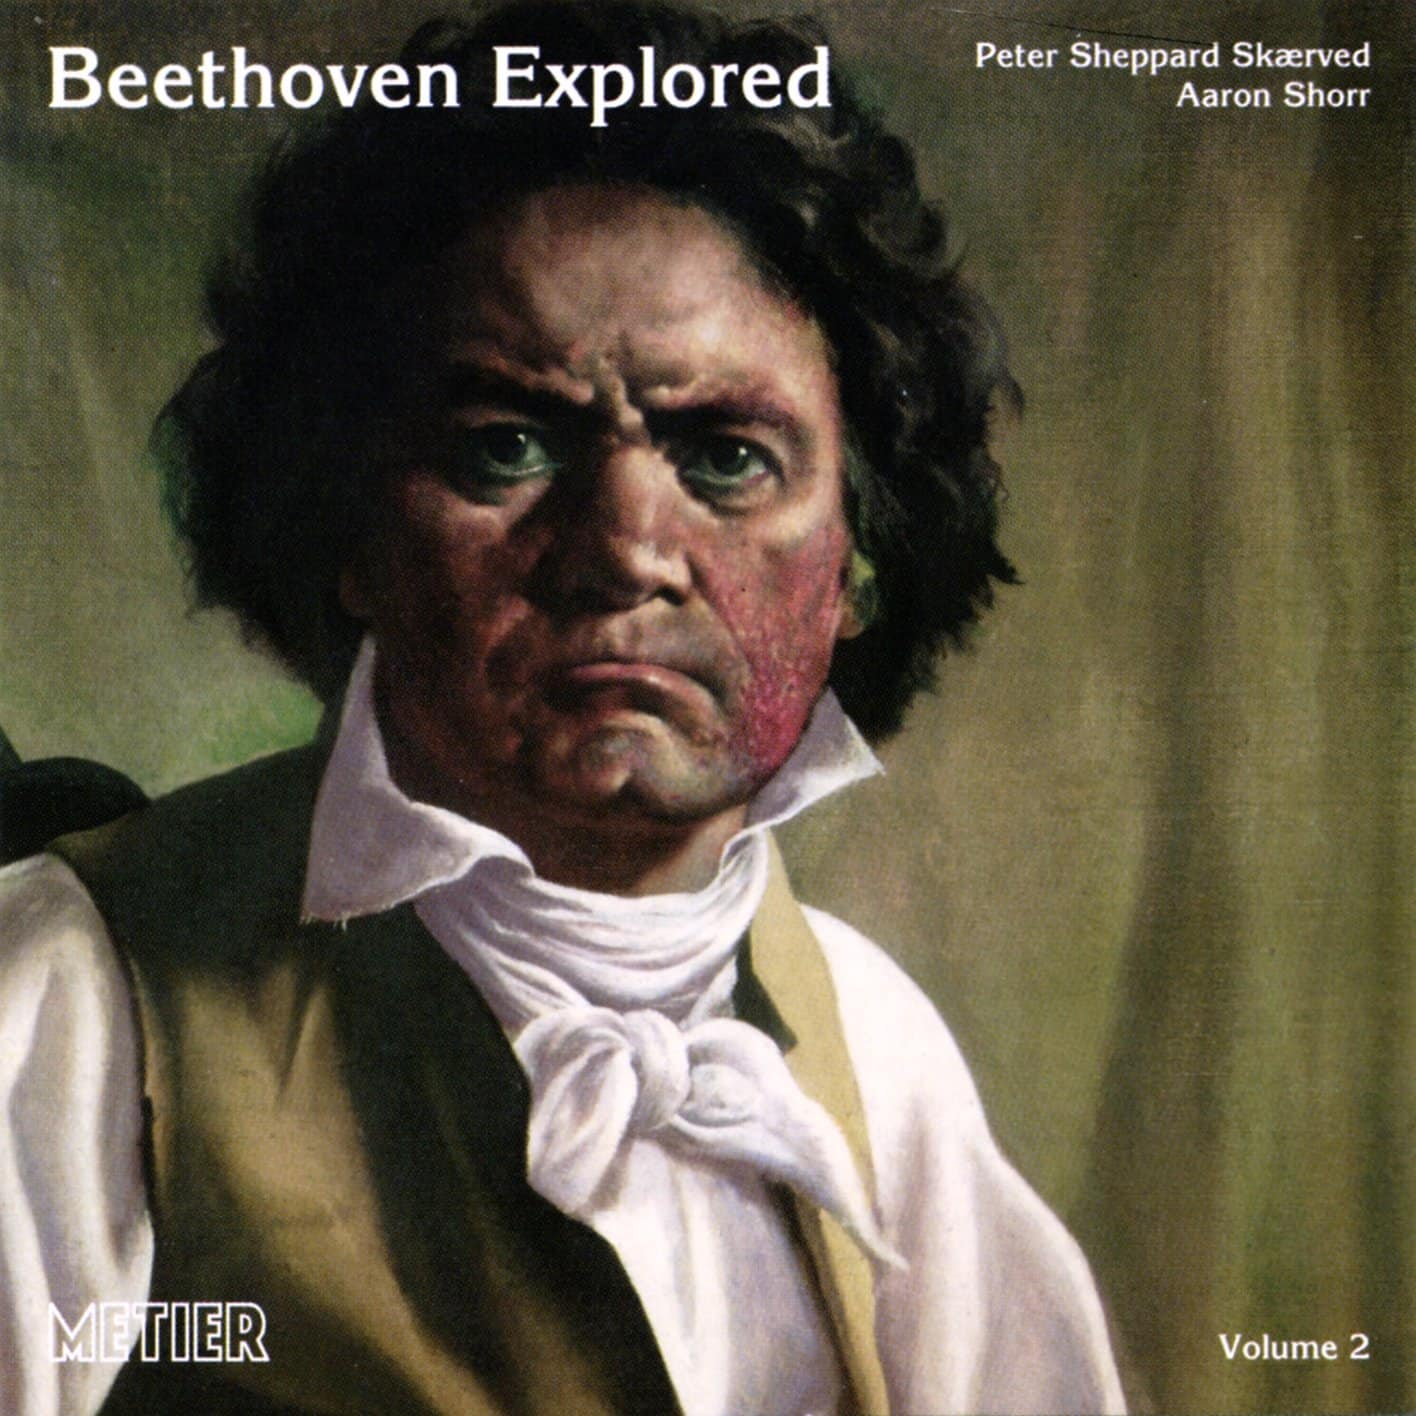 Beethoven Explored, volume 2